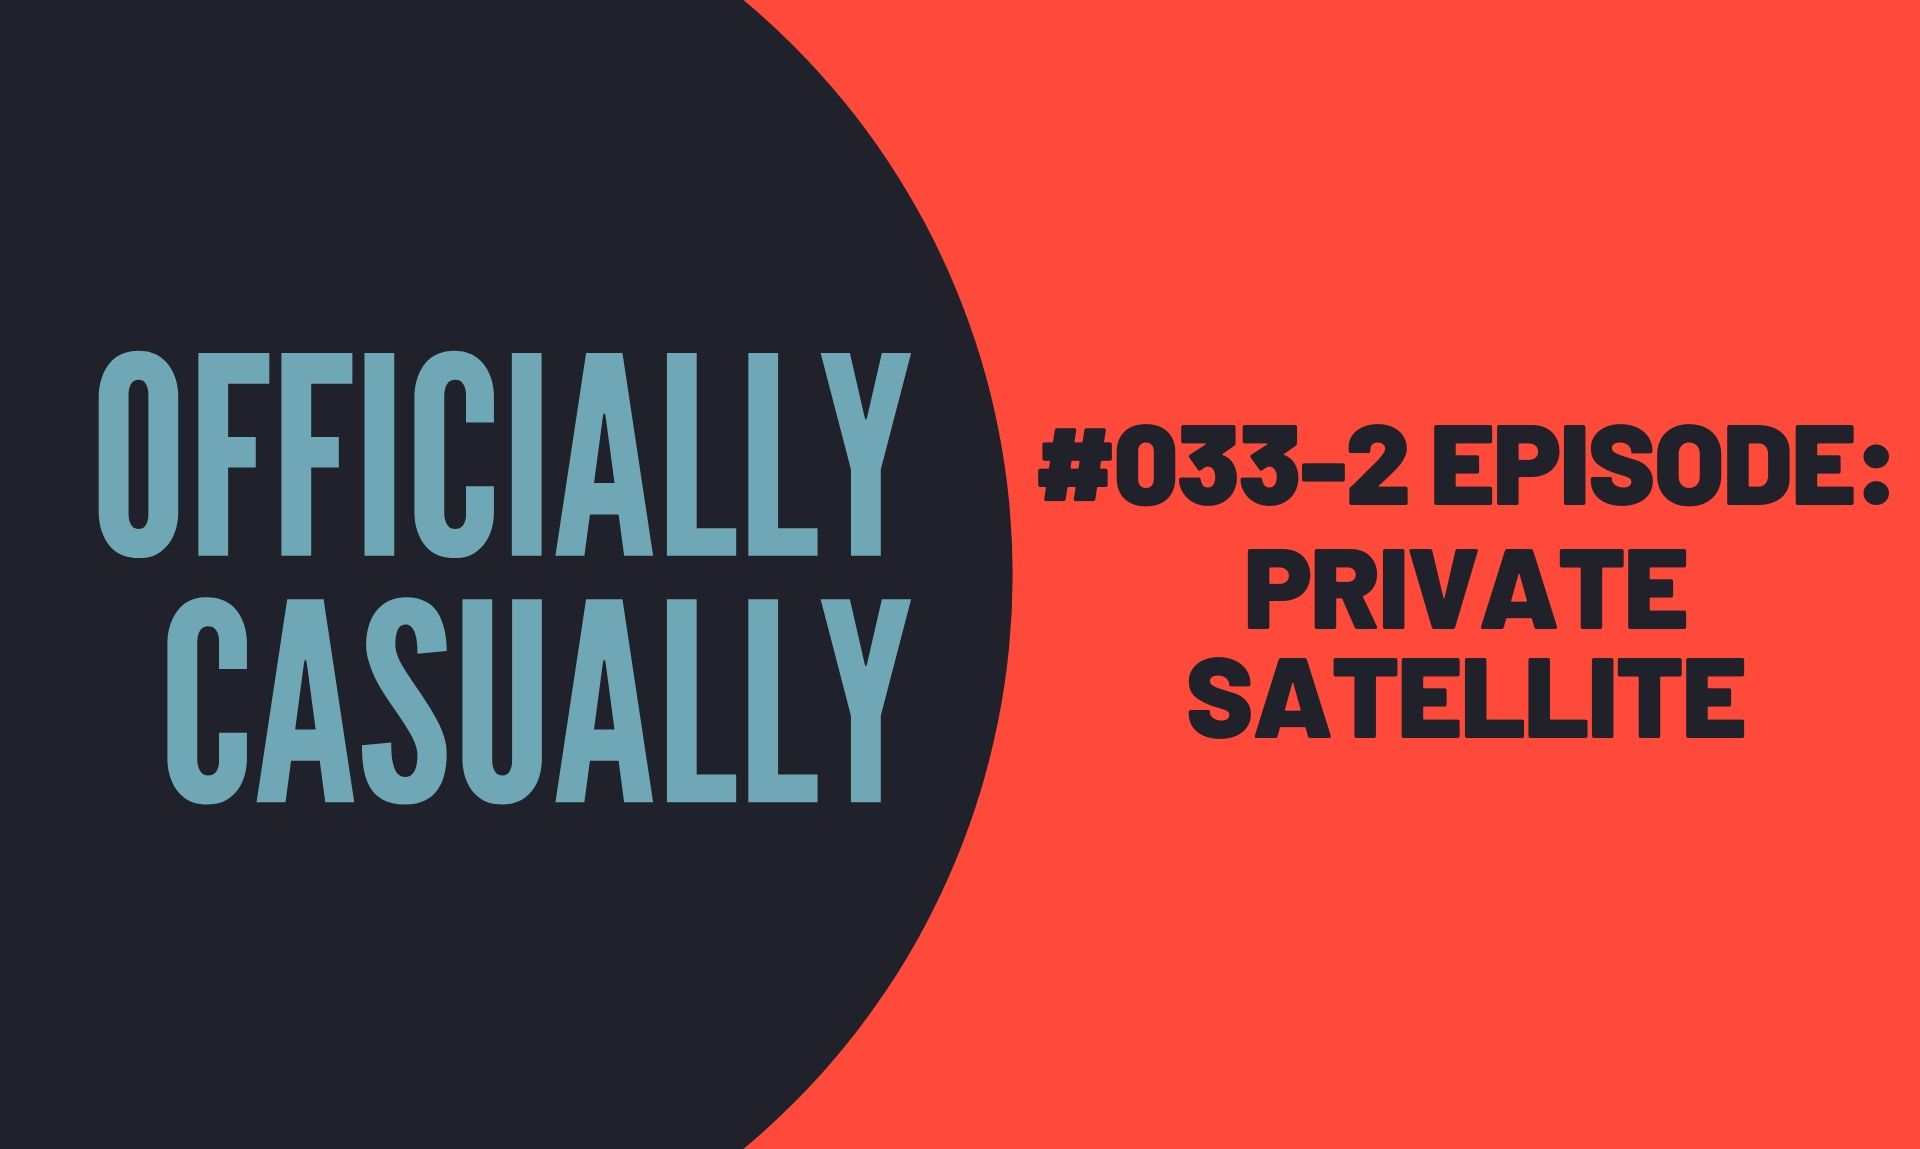 #33 EPISODE - PRIVATE SATELITE